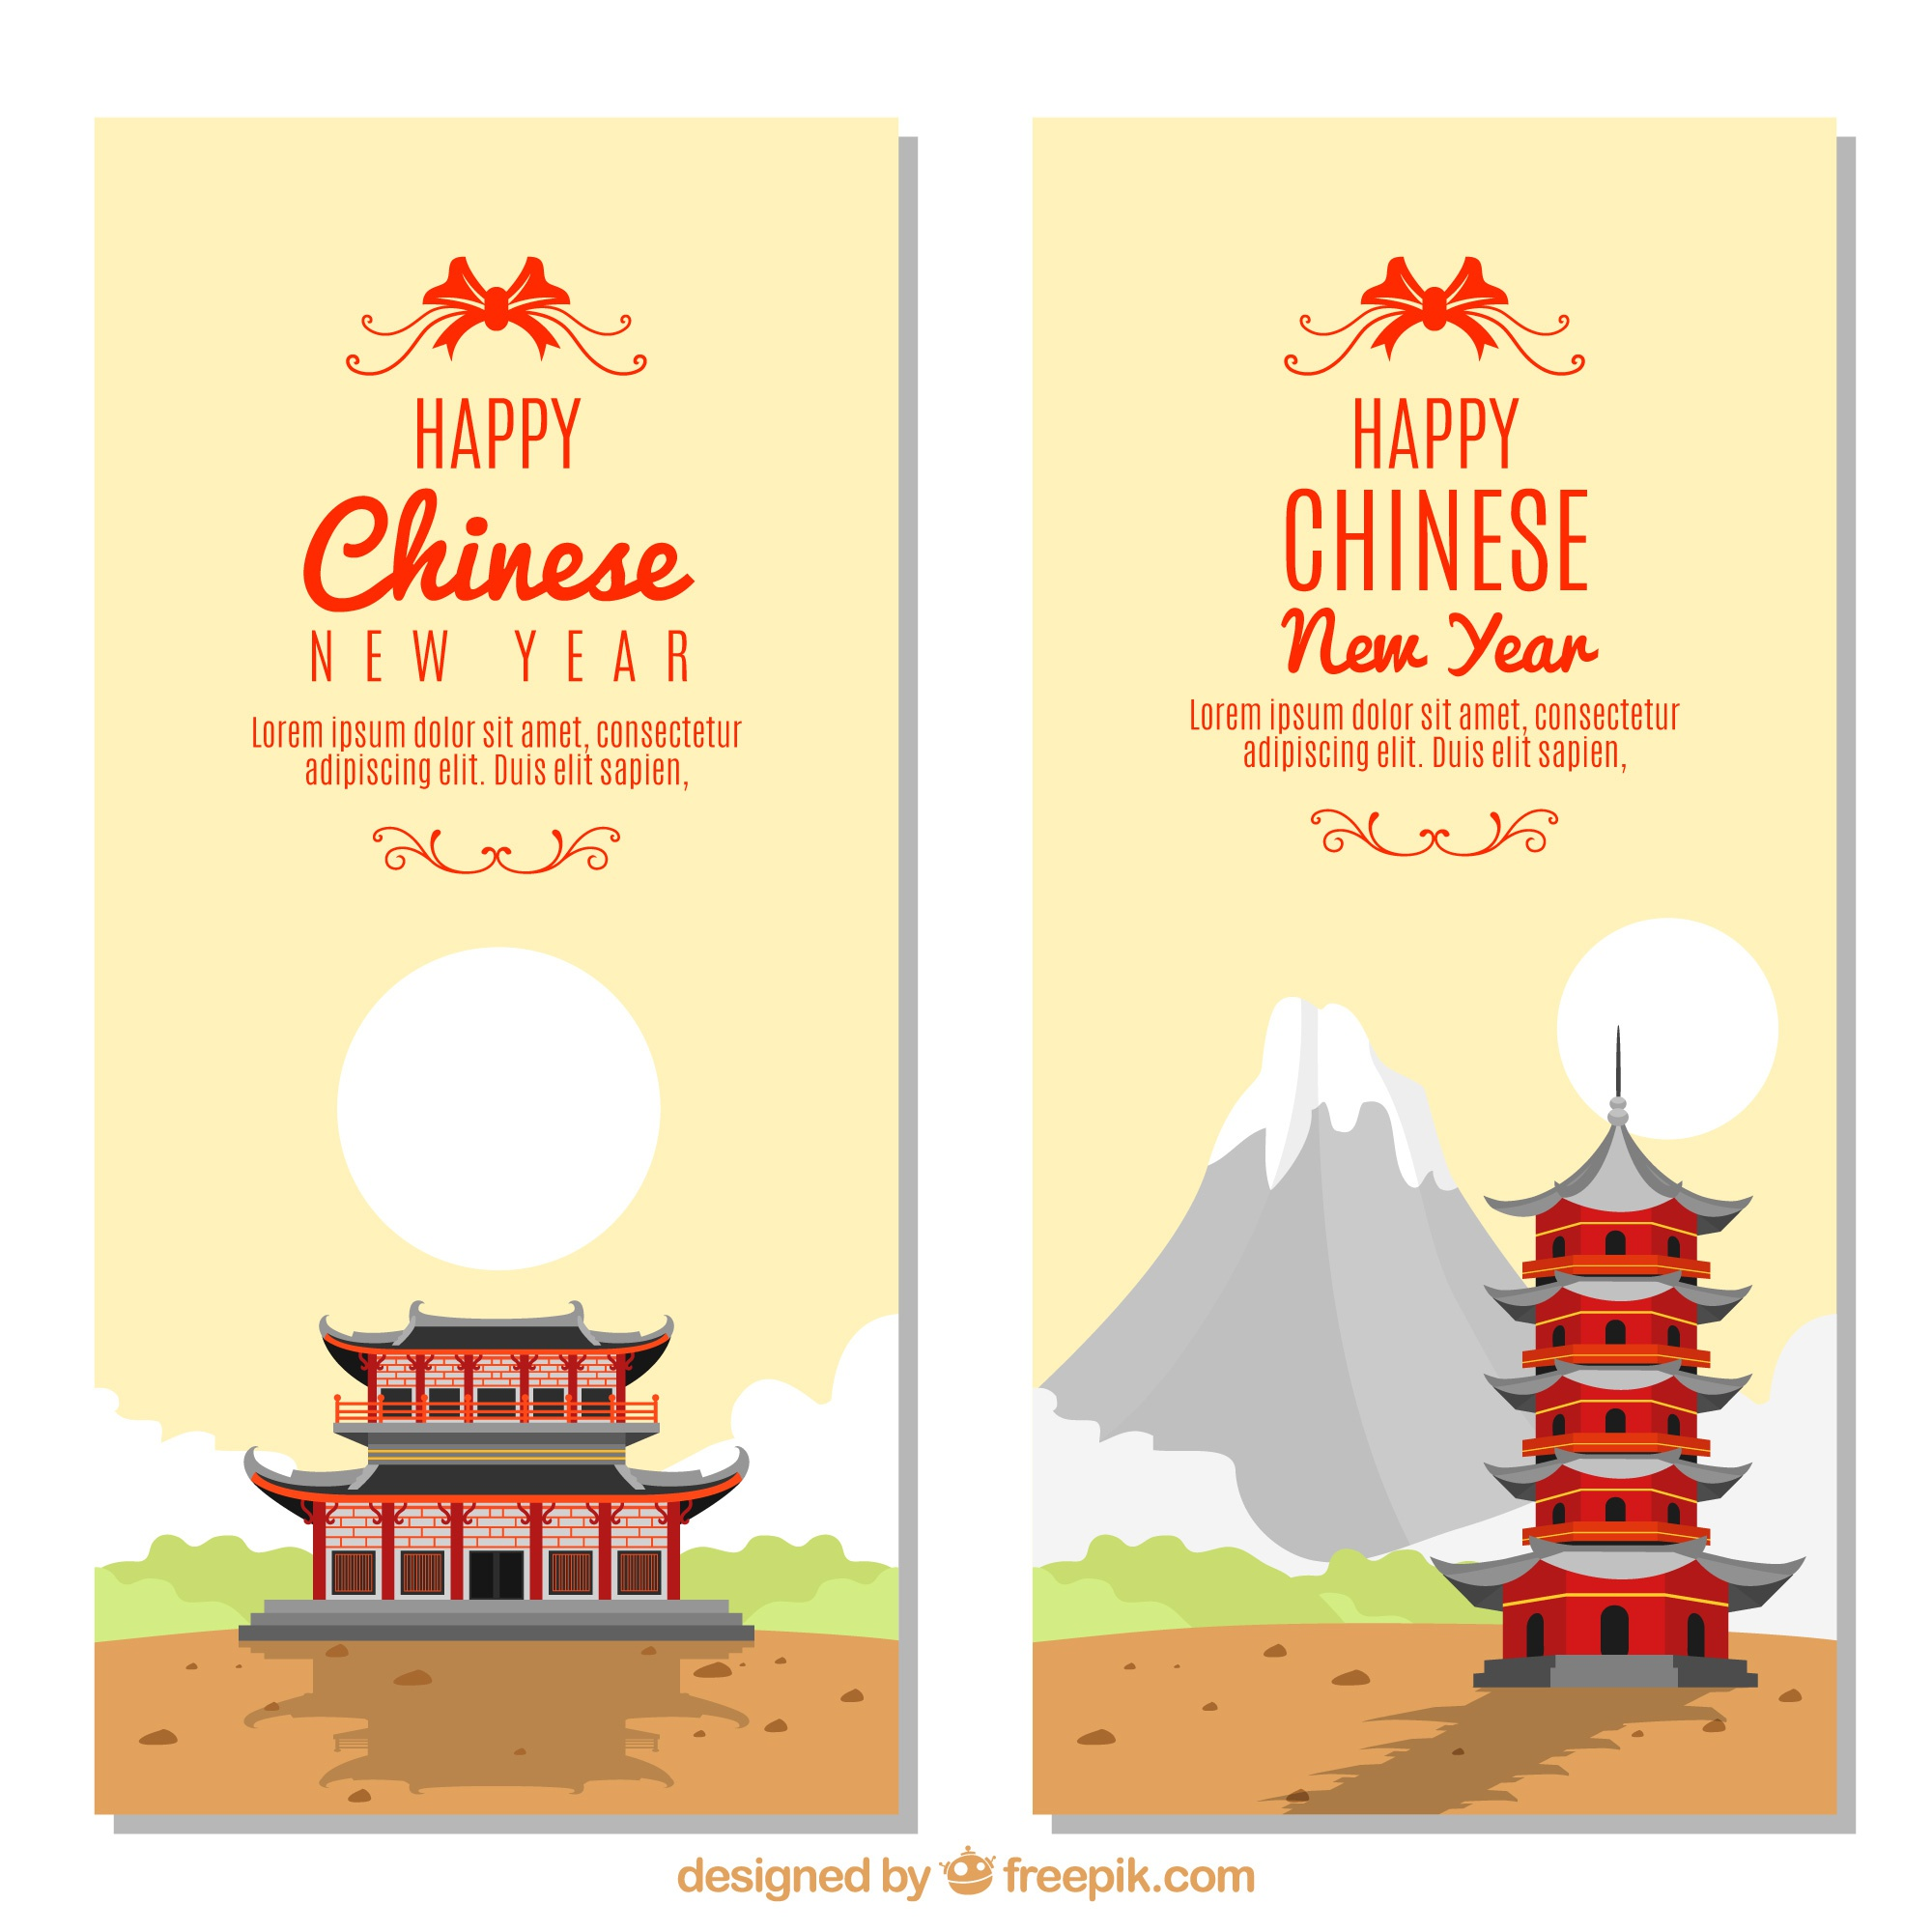 Chinese new year landscape banners